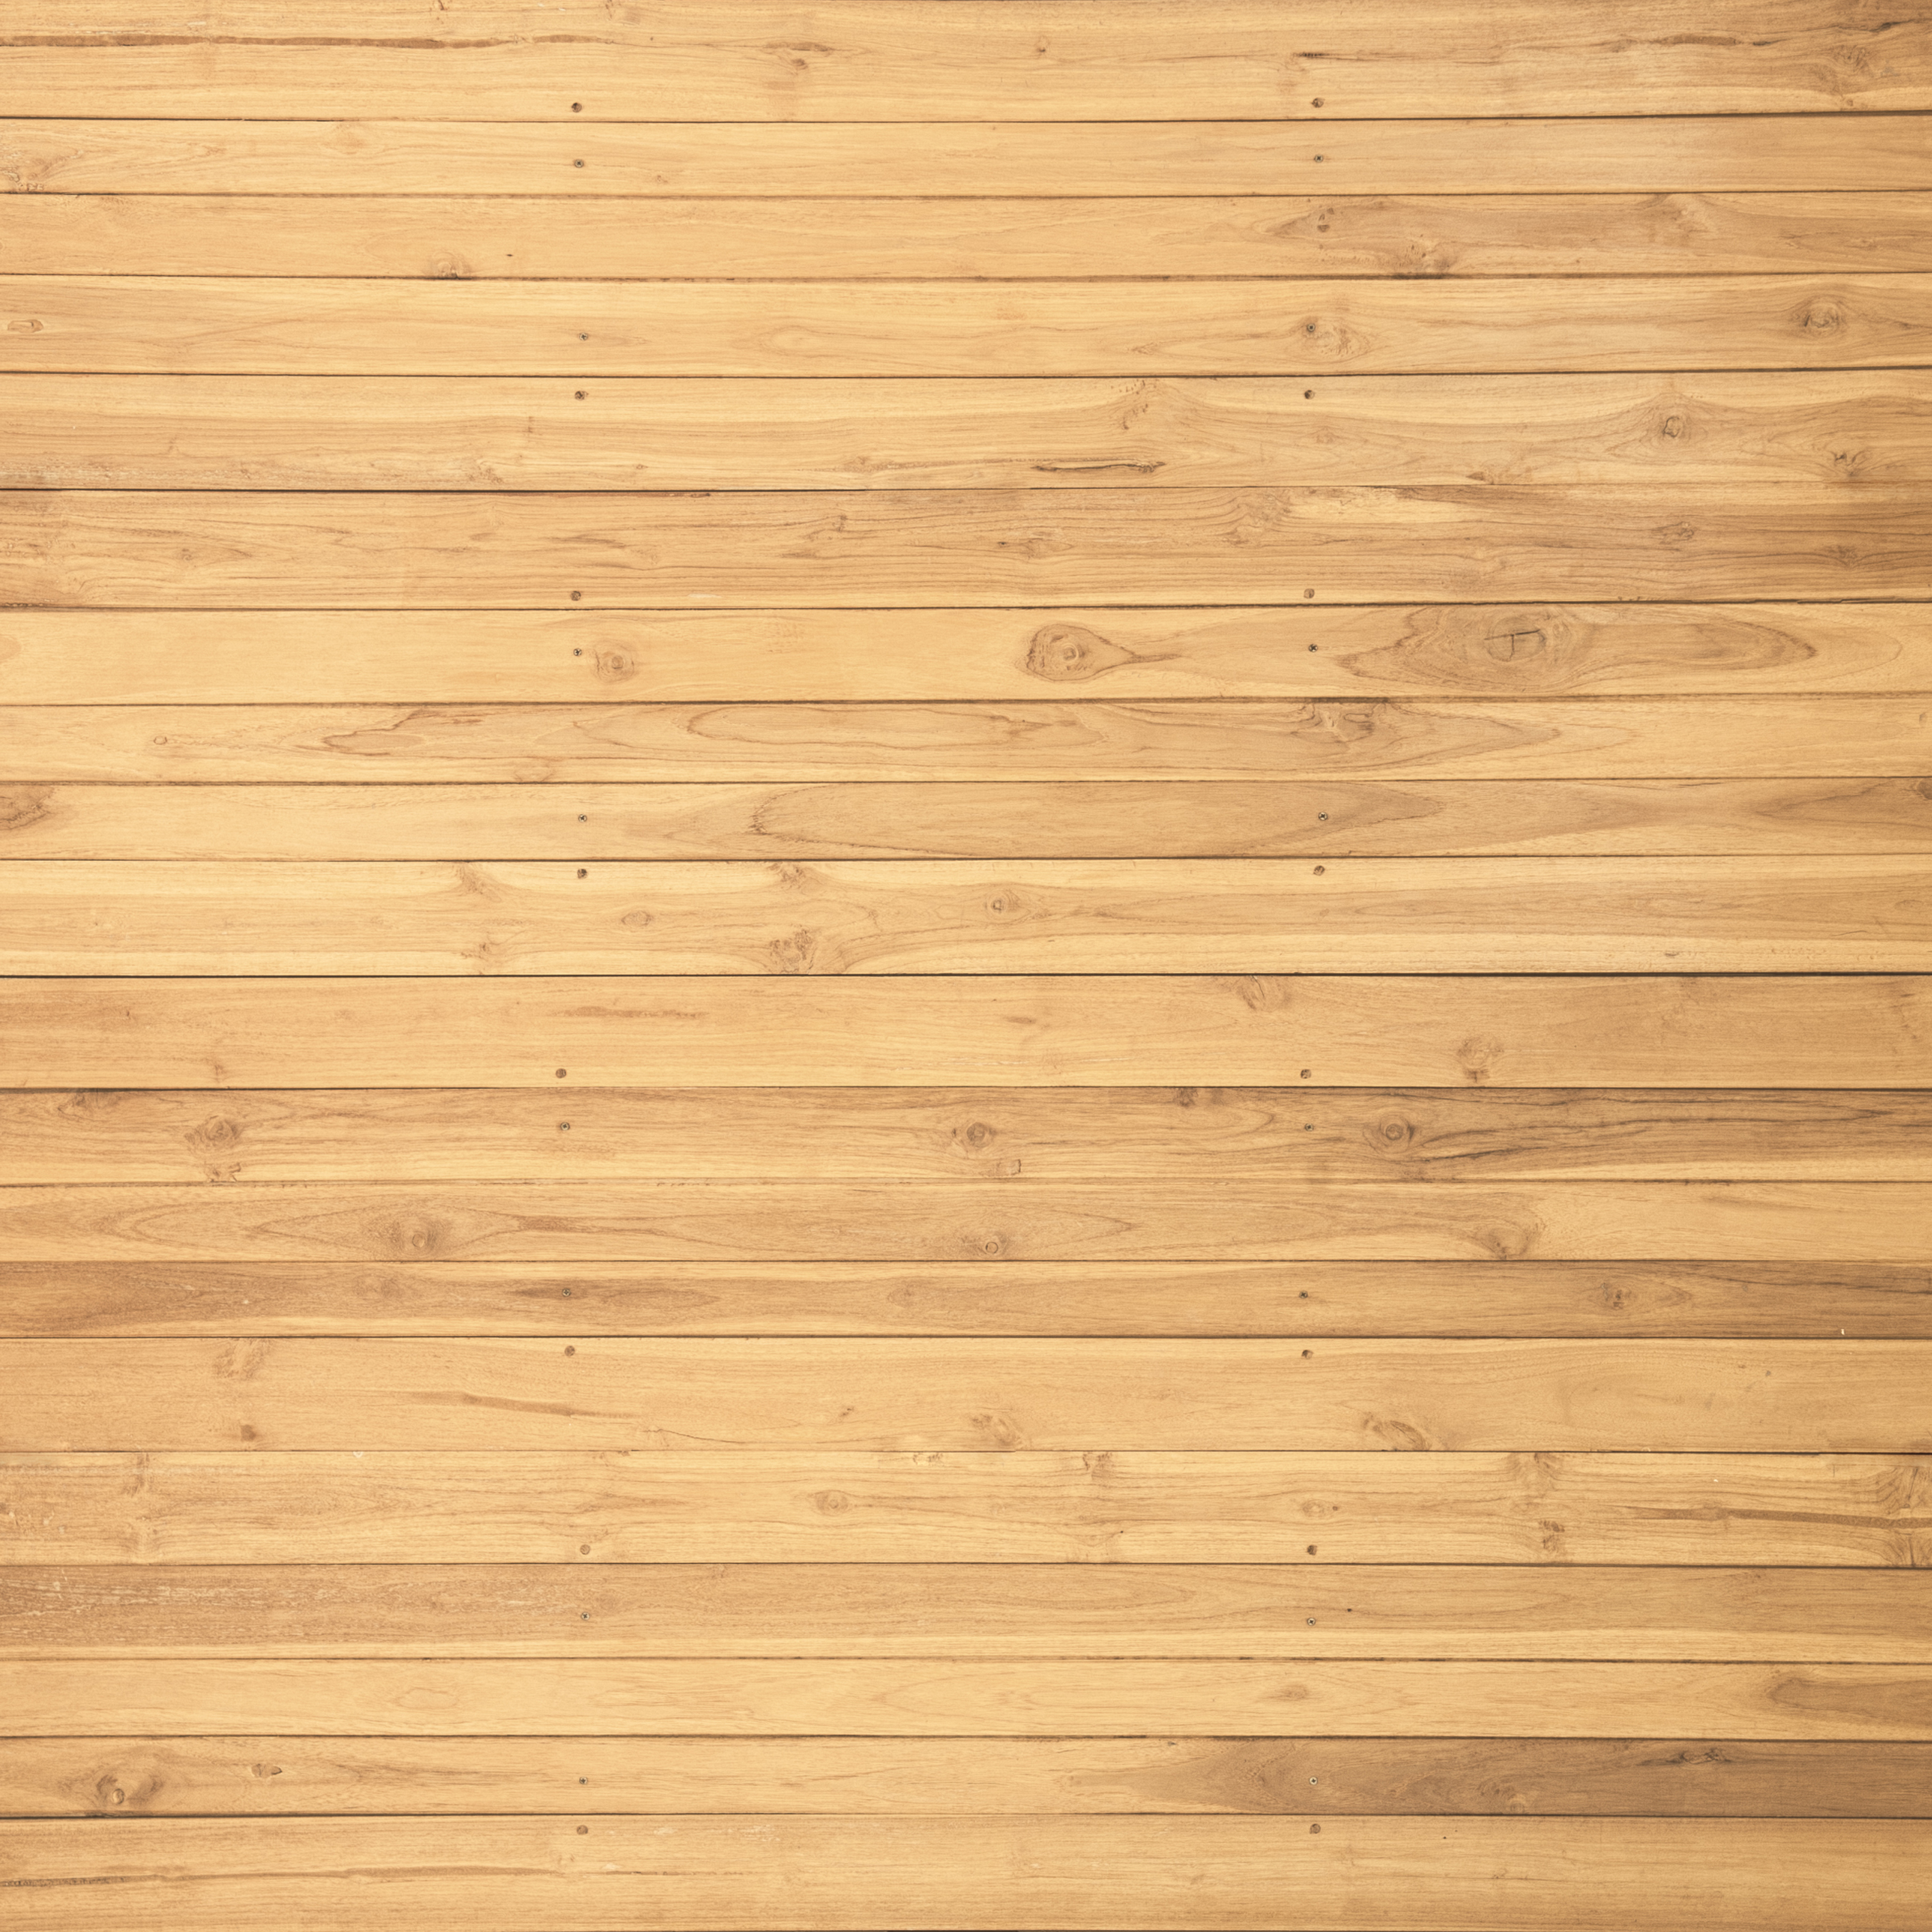 wooden flooring free stock photo of wood, building, construction, pattern XZLEXYL